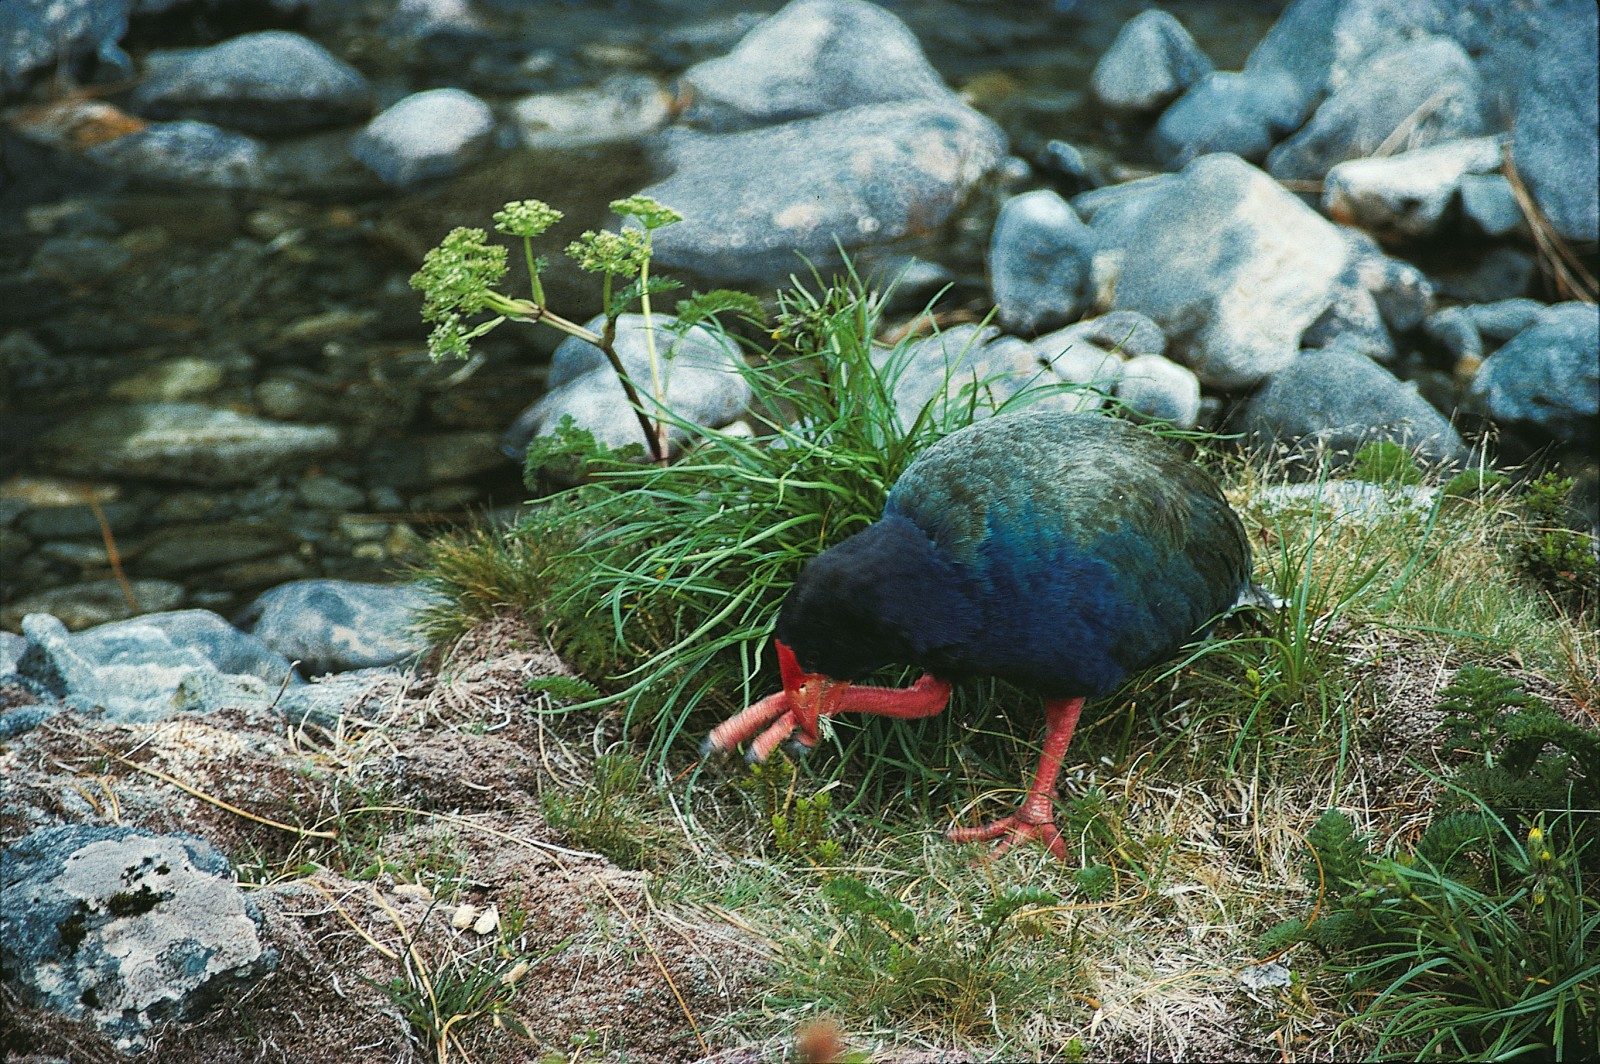 The bird then grasps the stem with a claw and bites off the more palatable lower parts. But even those portions are high in fibre and low in nutrients, so, like pandas chewing bamboo, takahe just have to keep on eating.